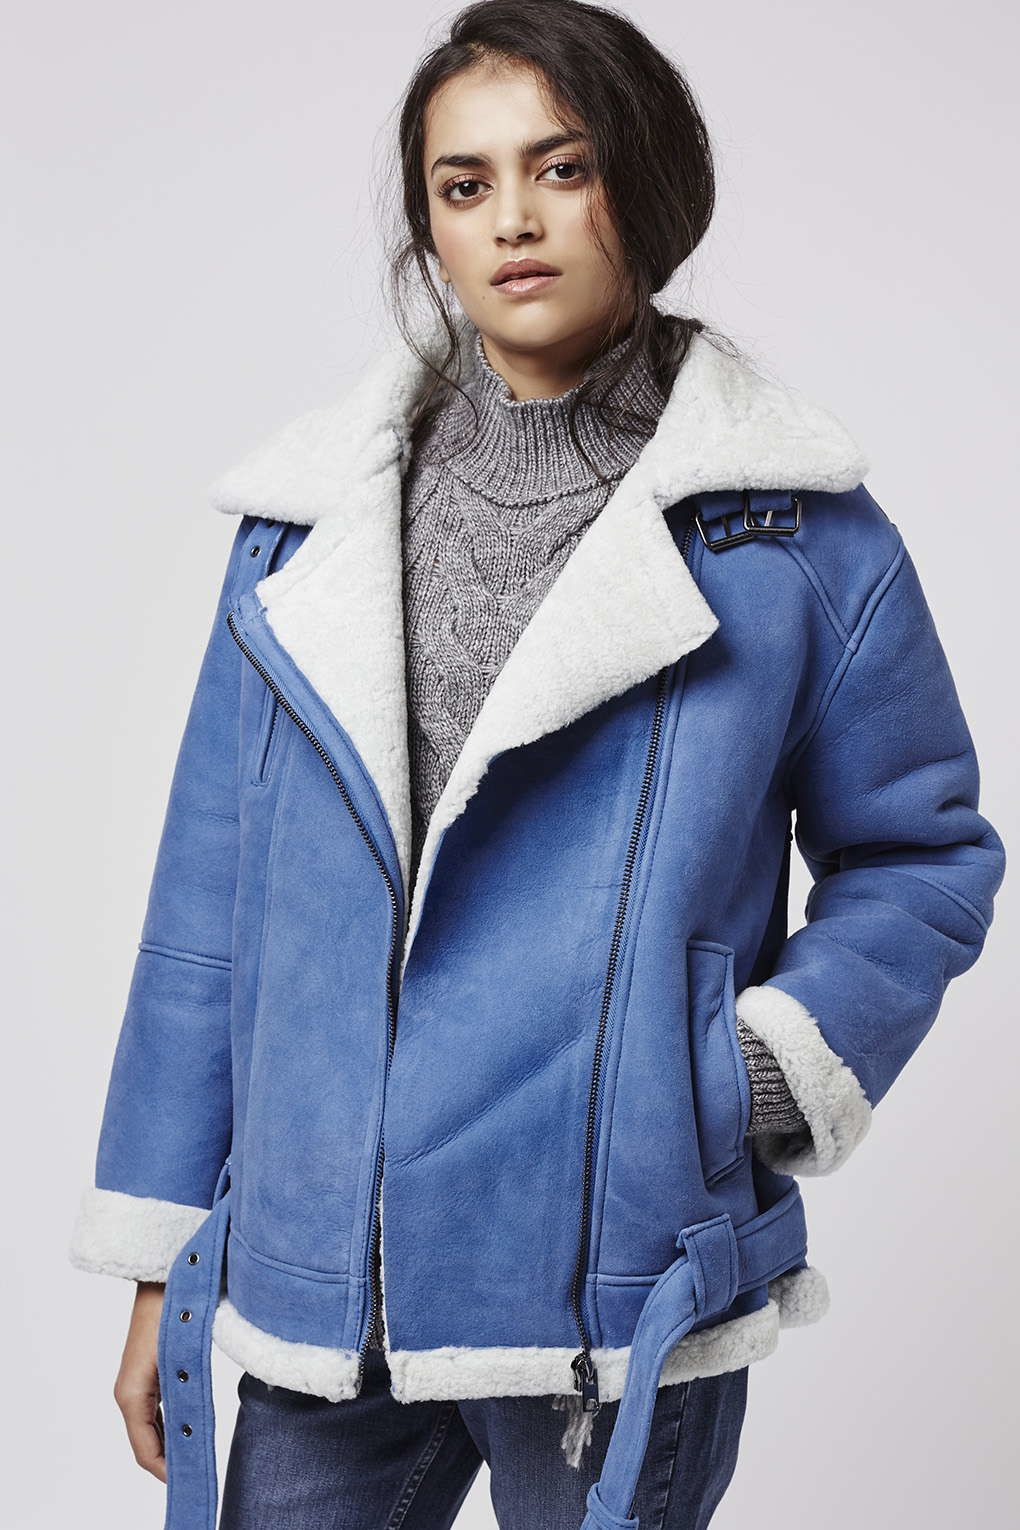 TOPSHOP Women's Blue Real Shearling Biker Jacket | Outerwear ...